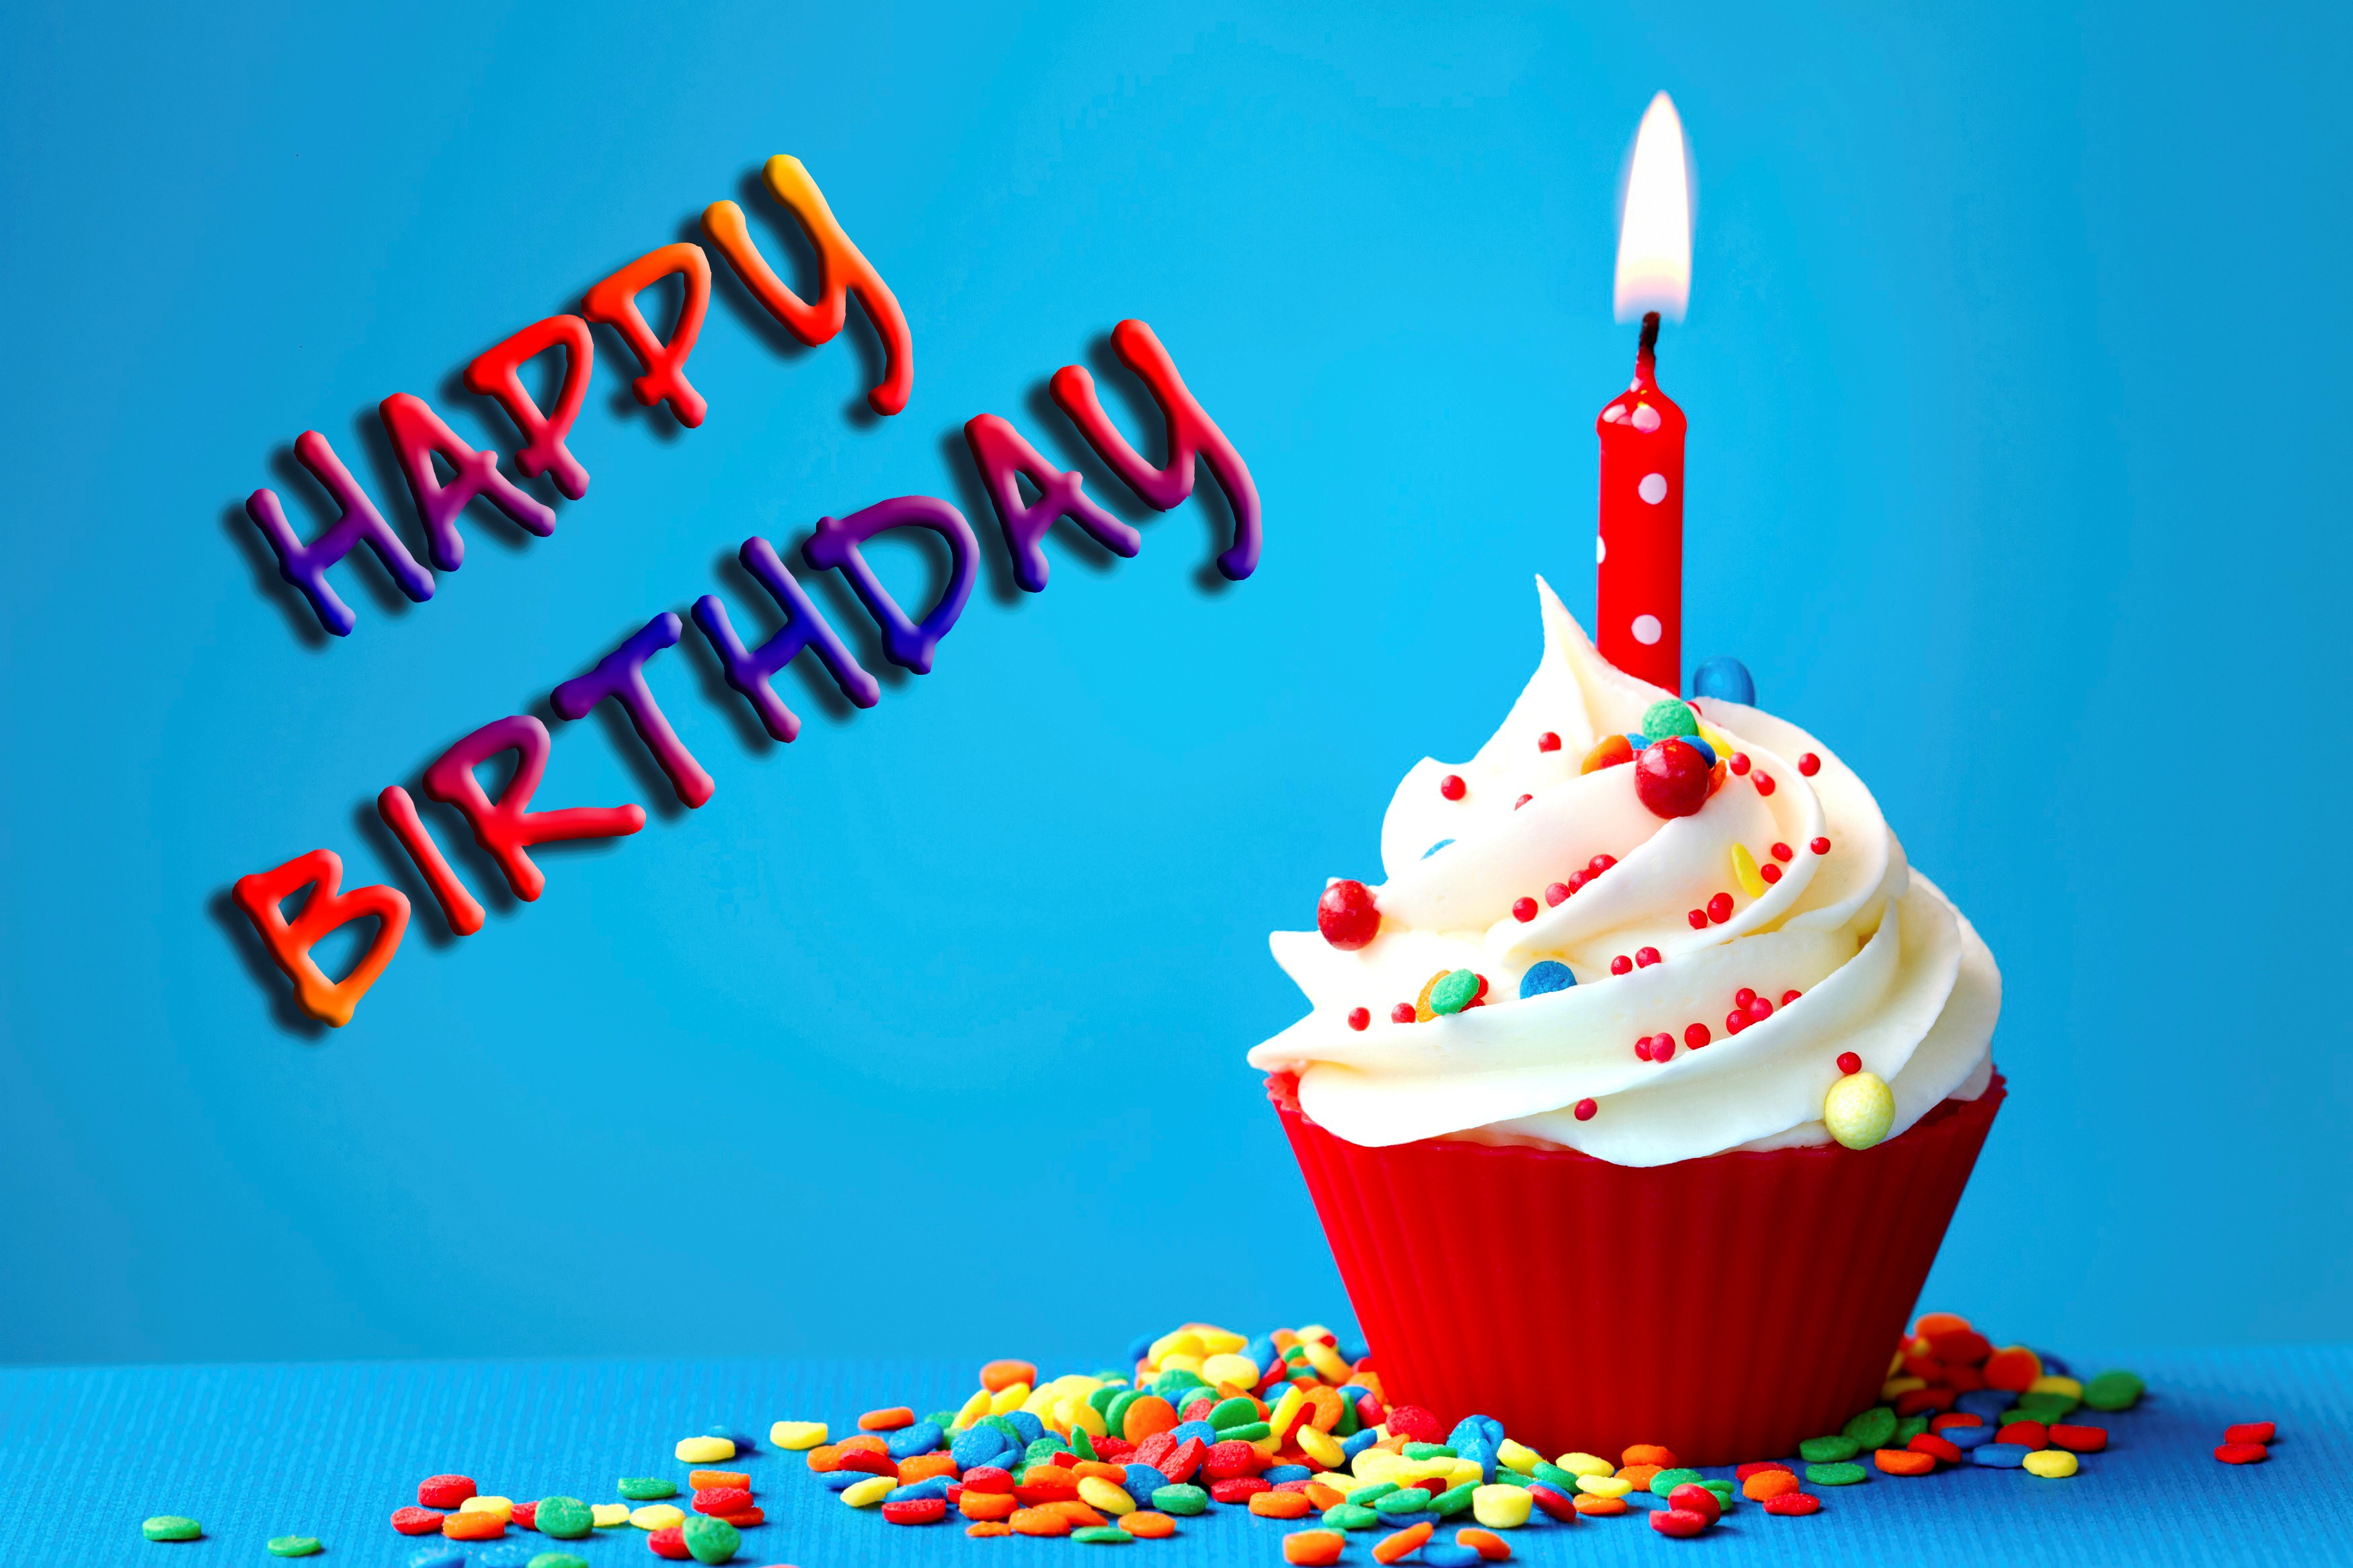 wallpaper birthday images ; Amazing_Birthday_Wish_with_Cake_and_Candle_Wallpaper